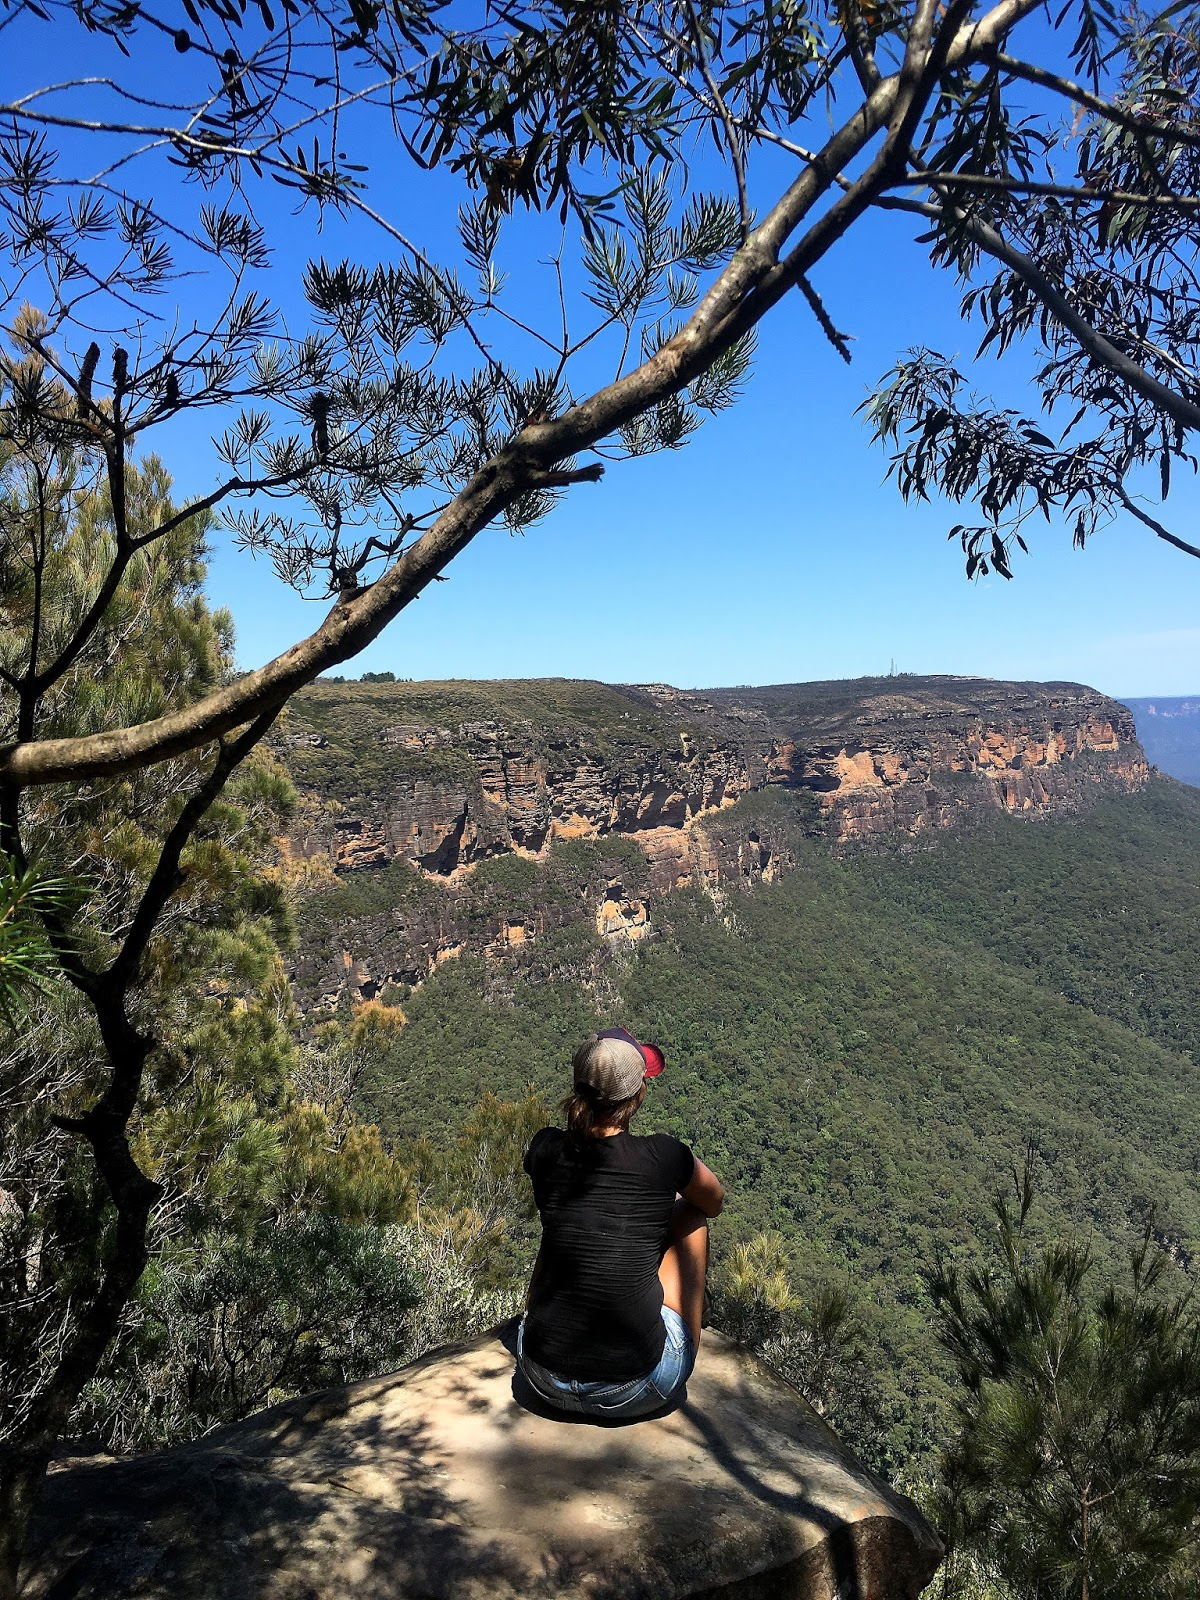 The National Pass track in the World Heritage listed Blue Mountains has been one of the most beautiful hiking trails I have seen. With the highest outdoor staircase and breathtaking views it's not to be missed!